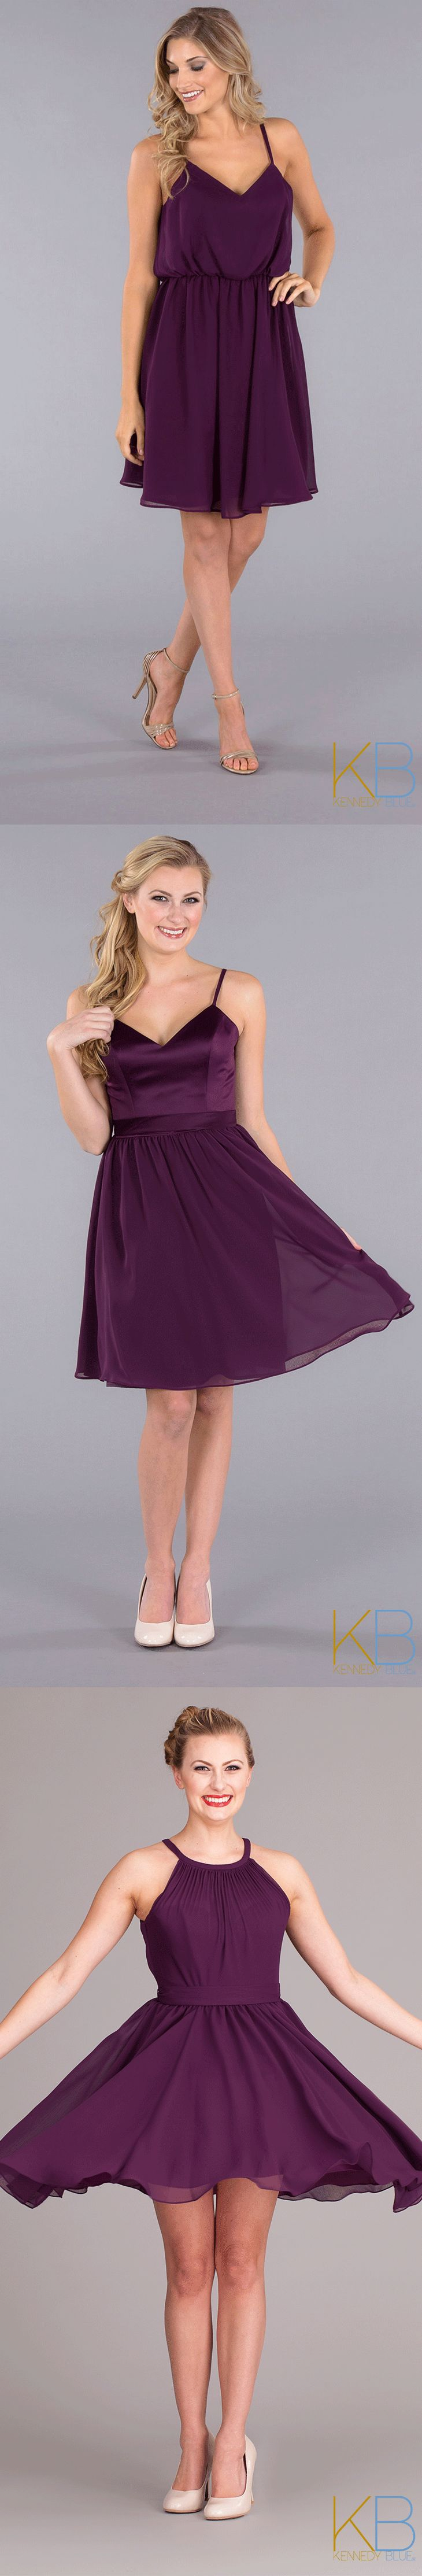 A style for every girl! Mix and match short purple bridesmaid dresses for a fun & unique look!